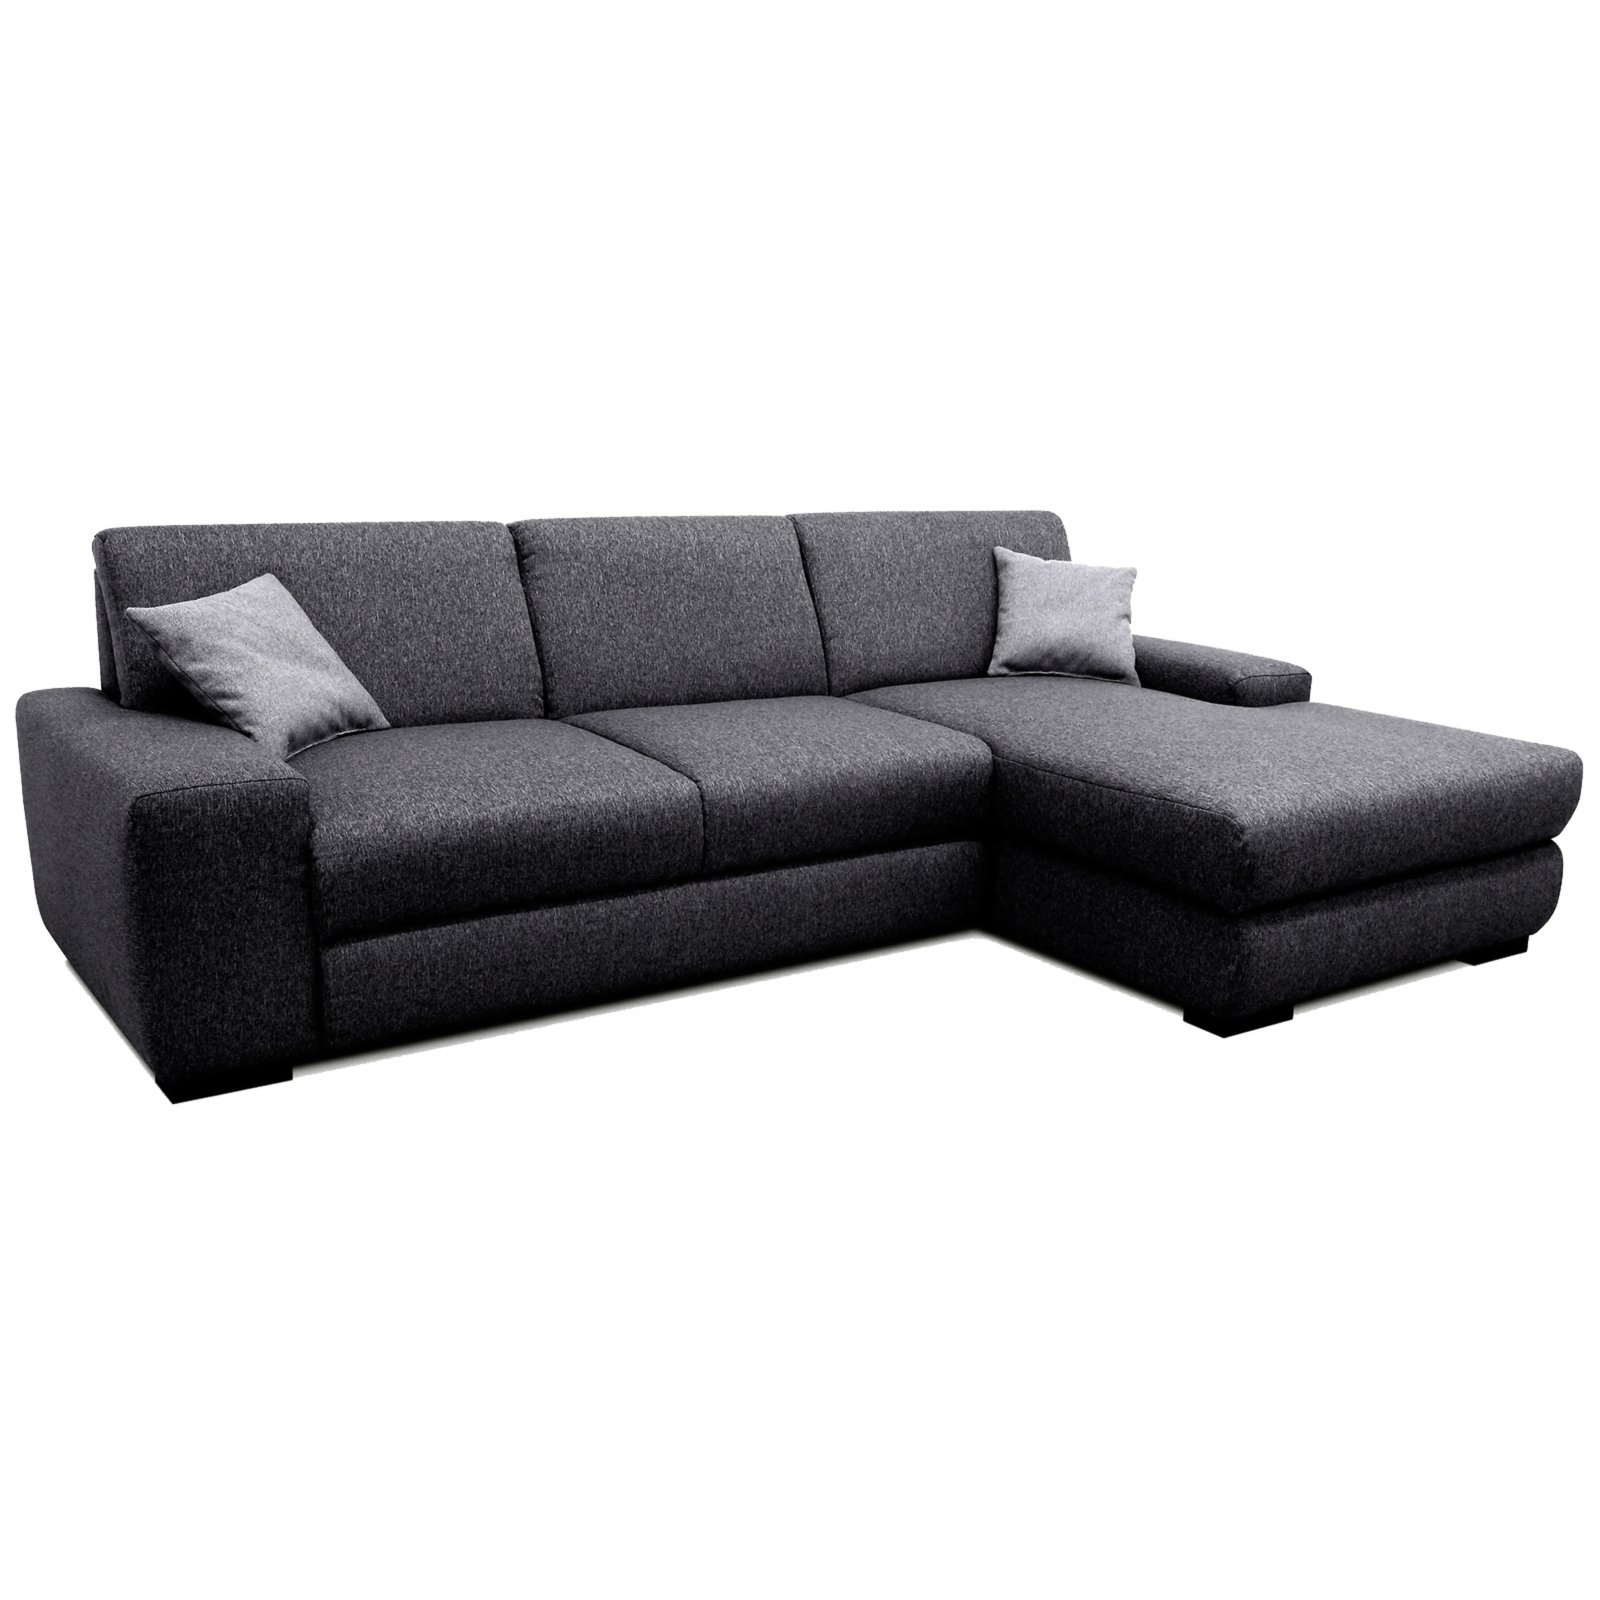 ecksofa anthrazit liegefunktion staukasten. Black Bedroom Furniture Sets. Home Design Ideas